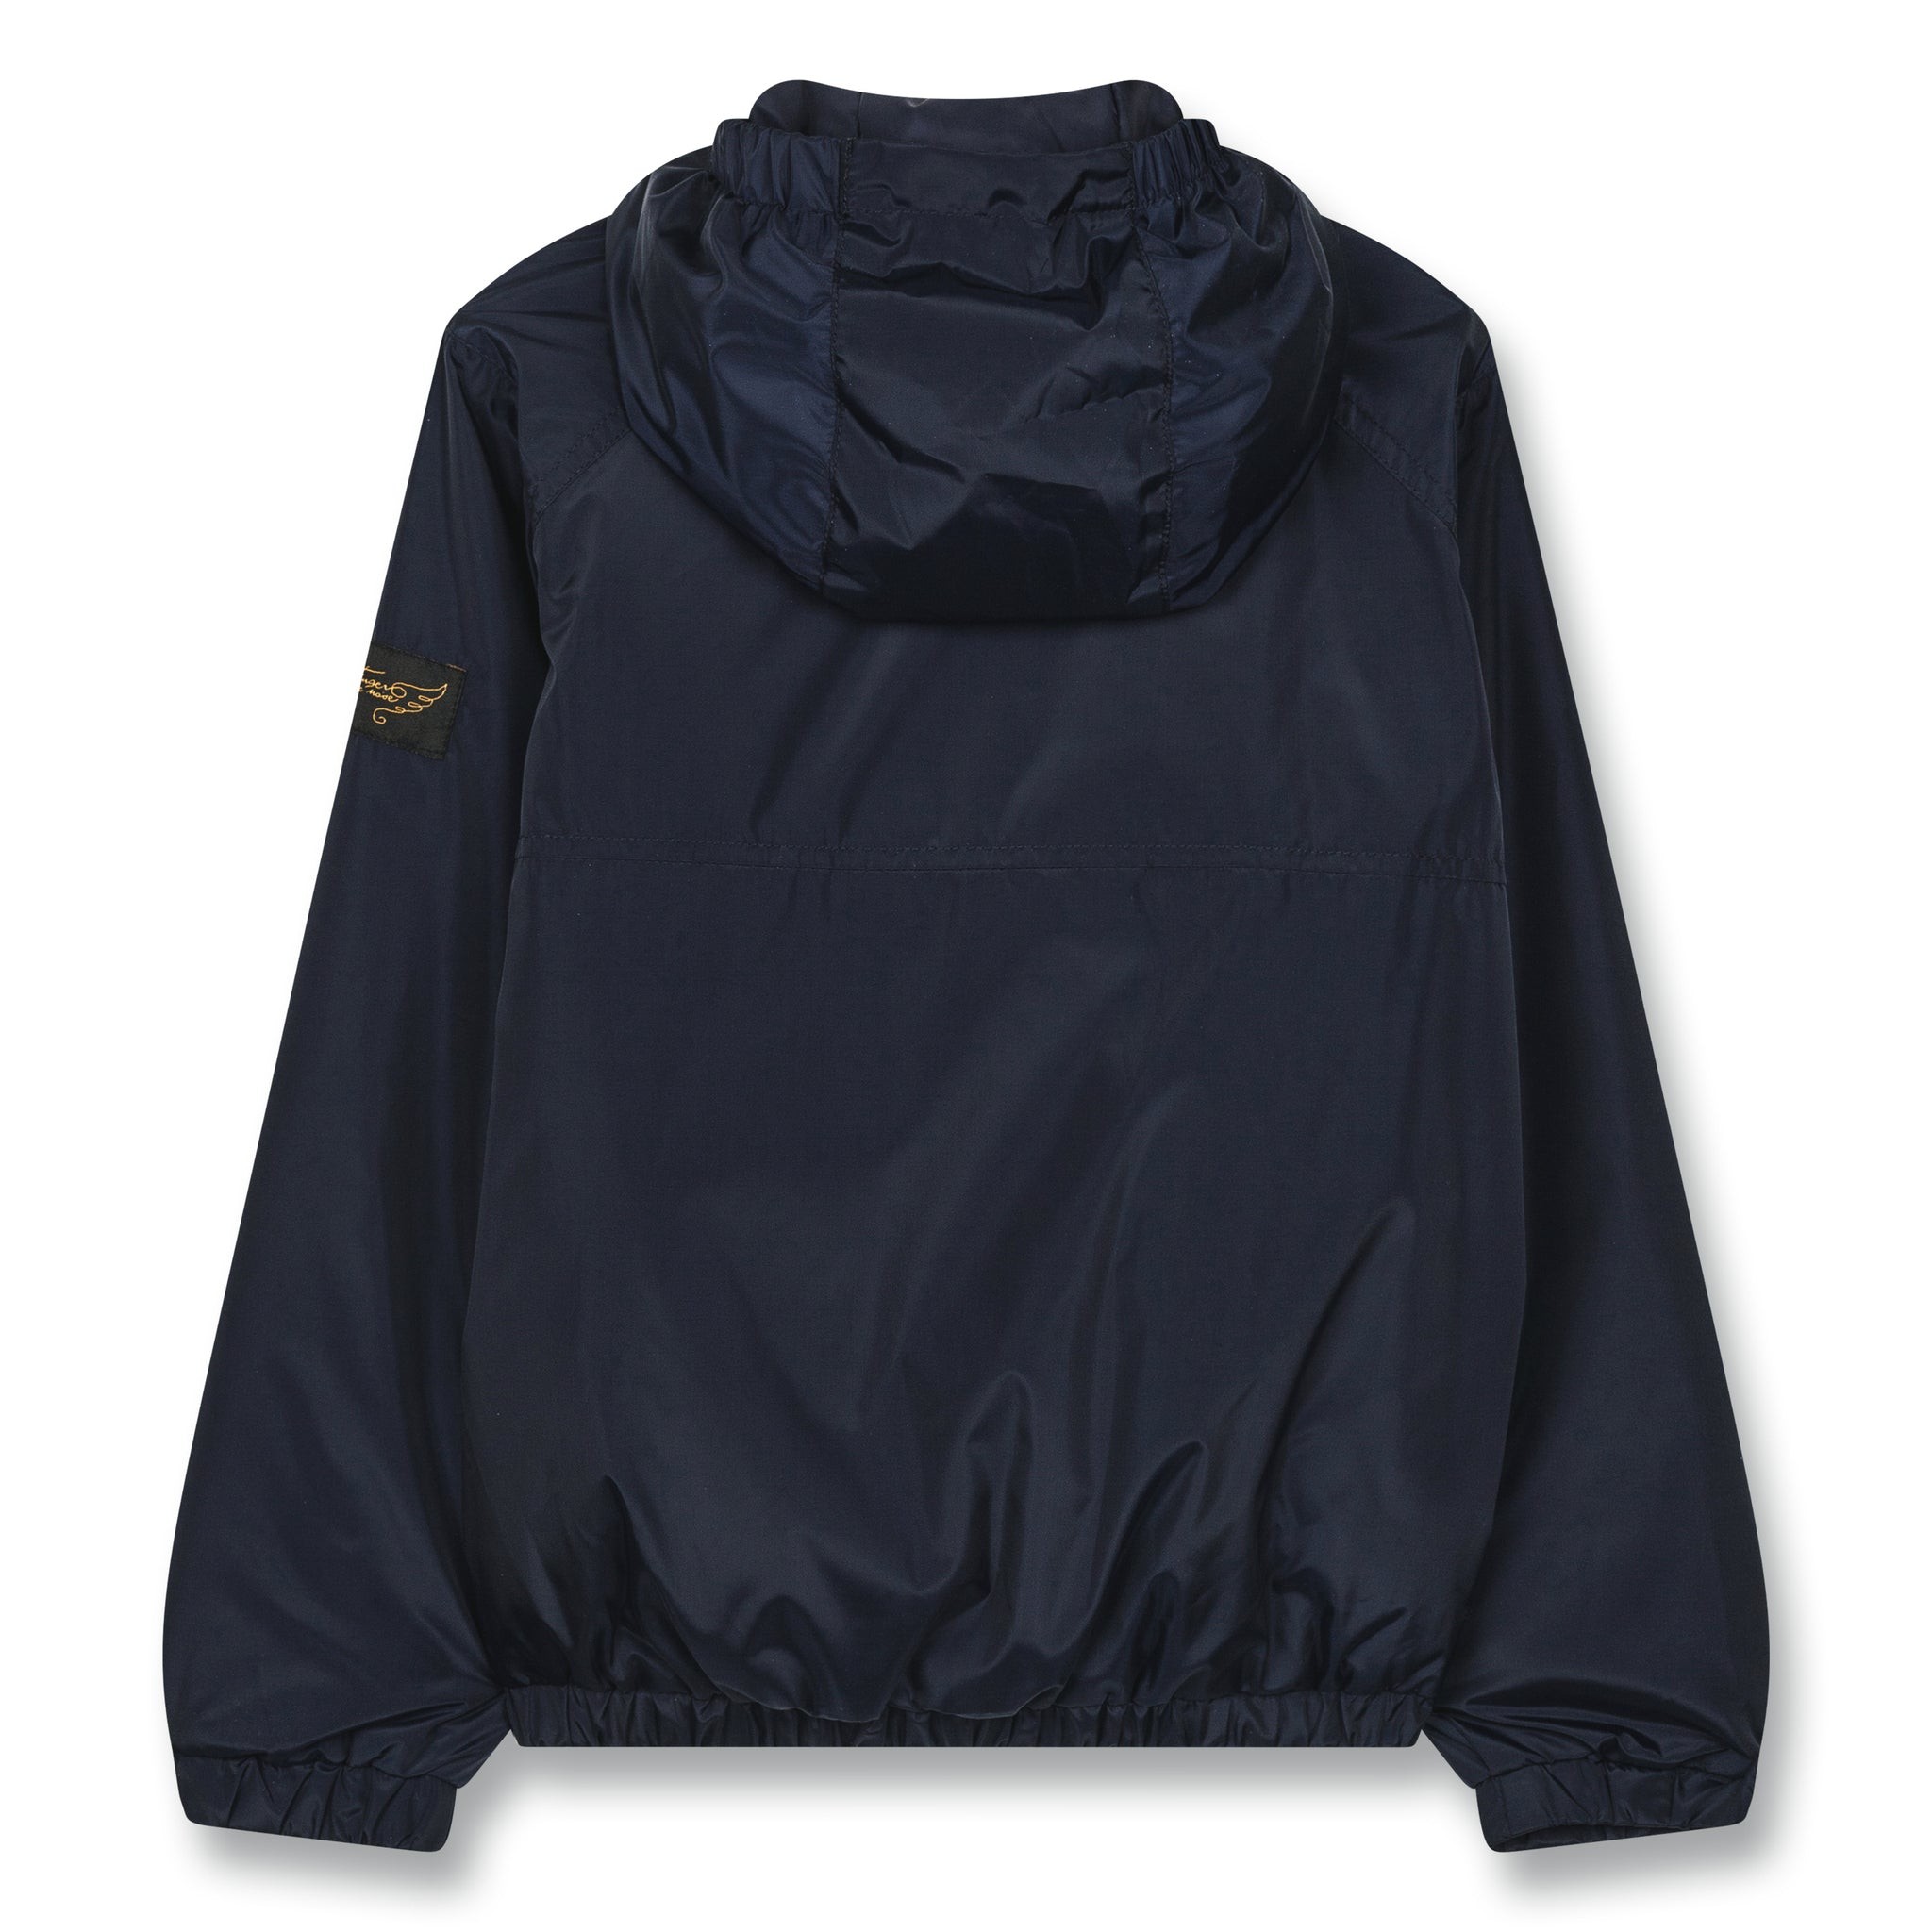 BARKLEY Super Navy - Hooded Windbreaker 2